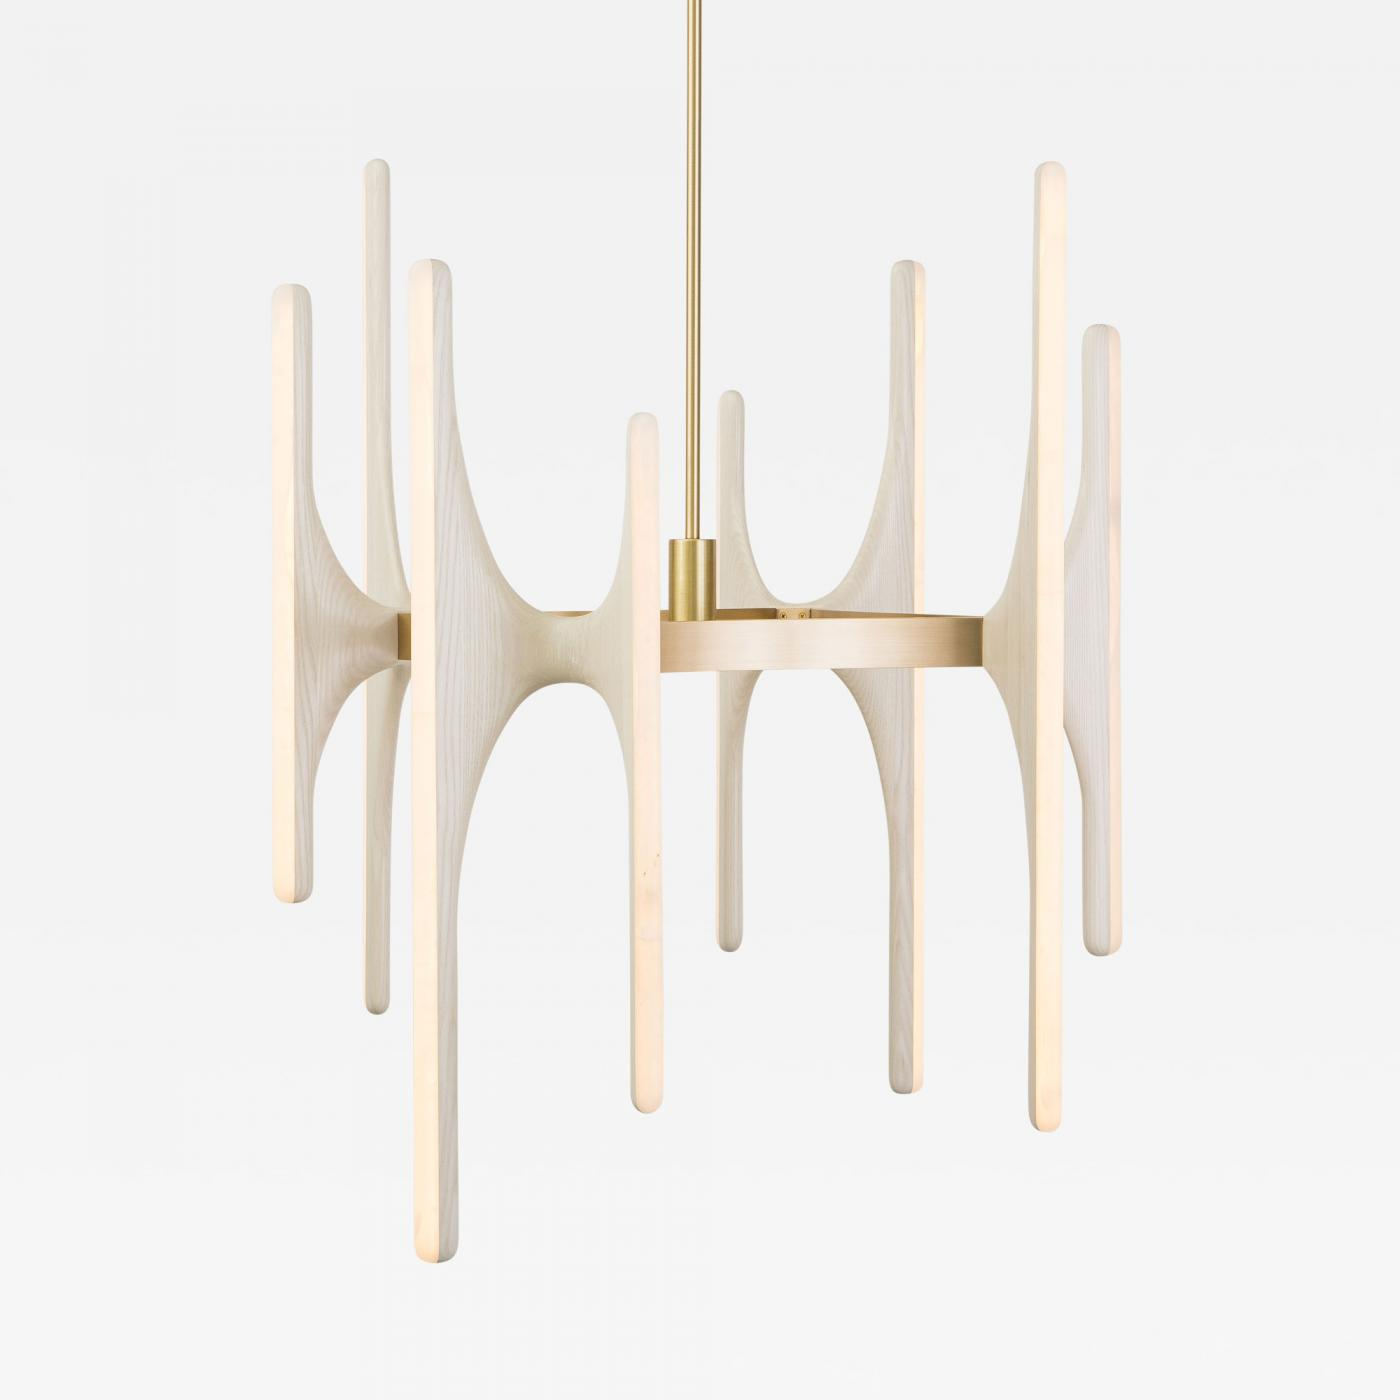 Markus haase markus haase bleached ash and onyx chandelier usa 2016 listings furniture lighting chandeliers and pendants aloadofball